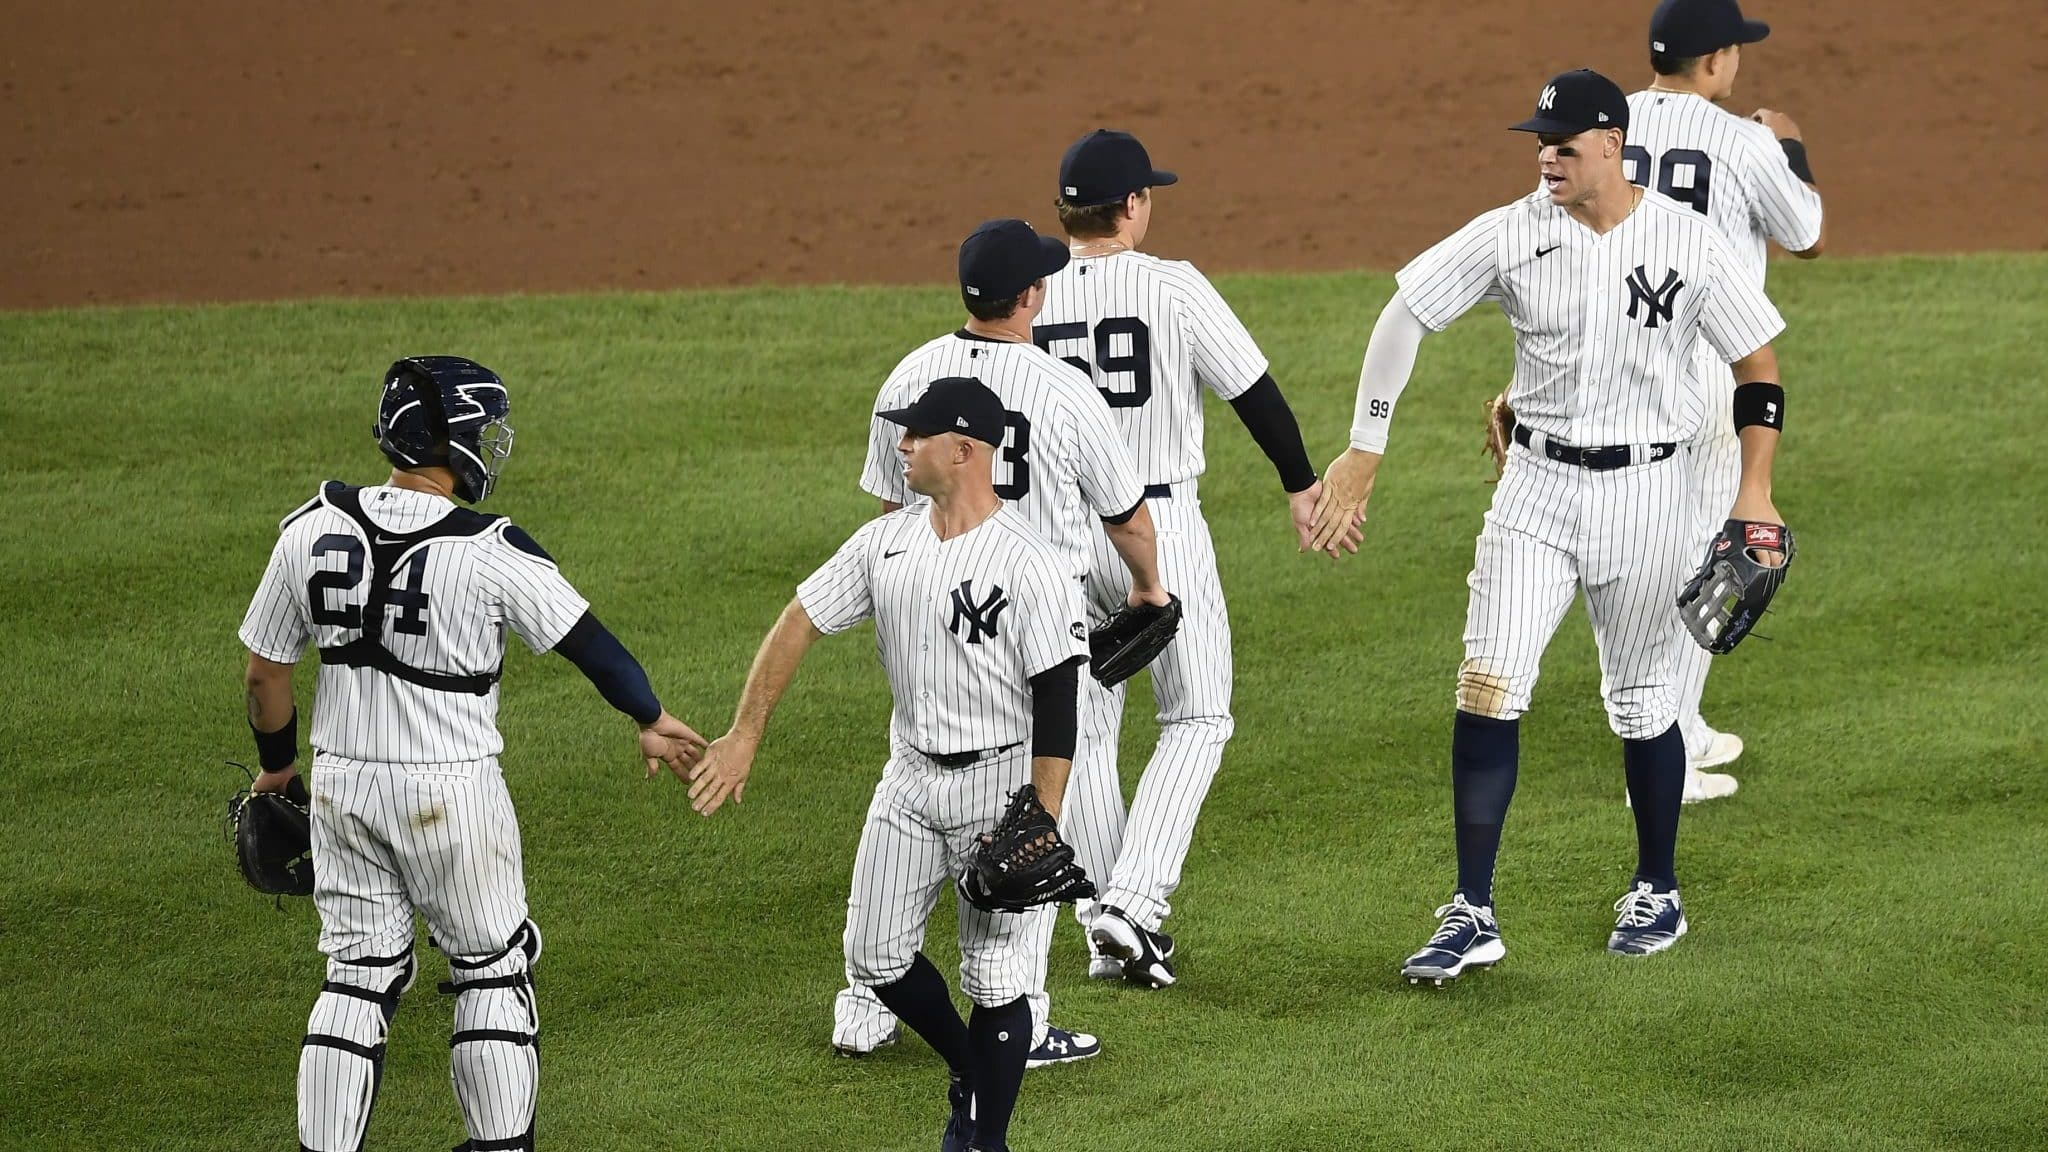 NEW YORK, NEW YORK - AUGUST 03: The New York Yankees high-five after winning 6-3 against the Philadelphia Phillies at Yankee Stadium on August 03, 2020 in the Bronx borough of New York City.